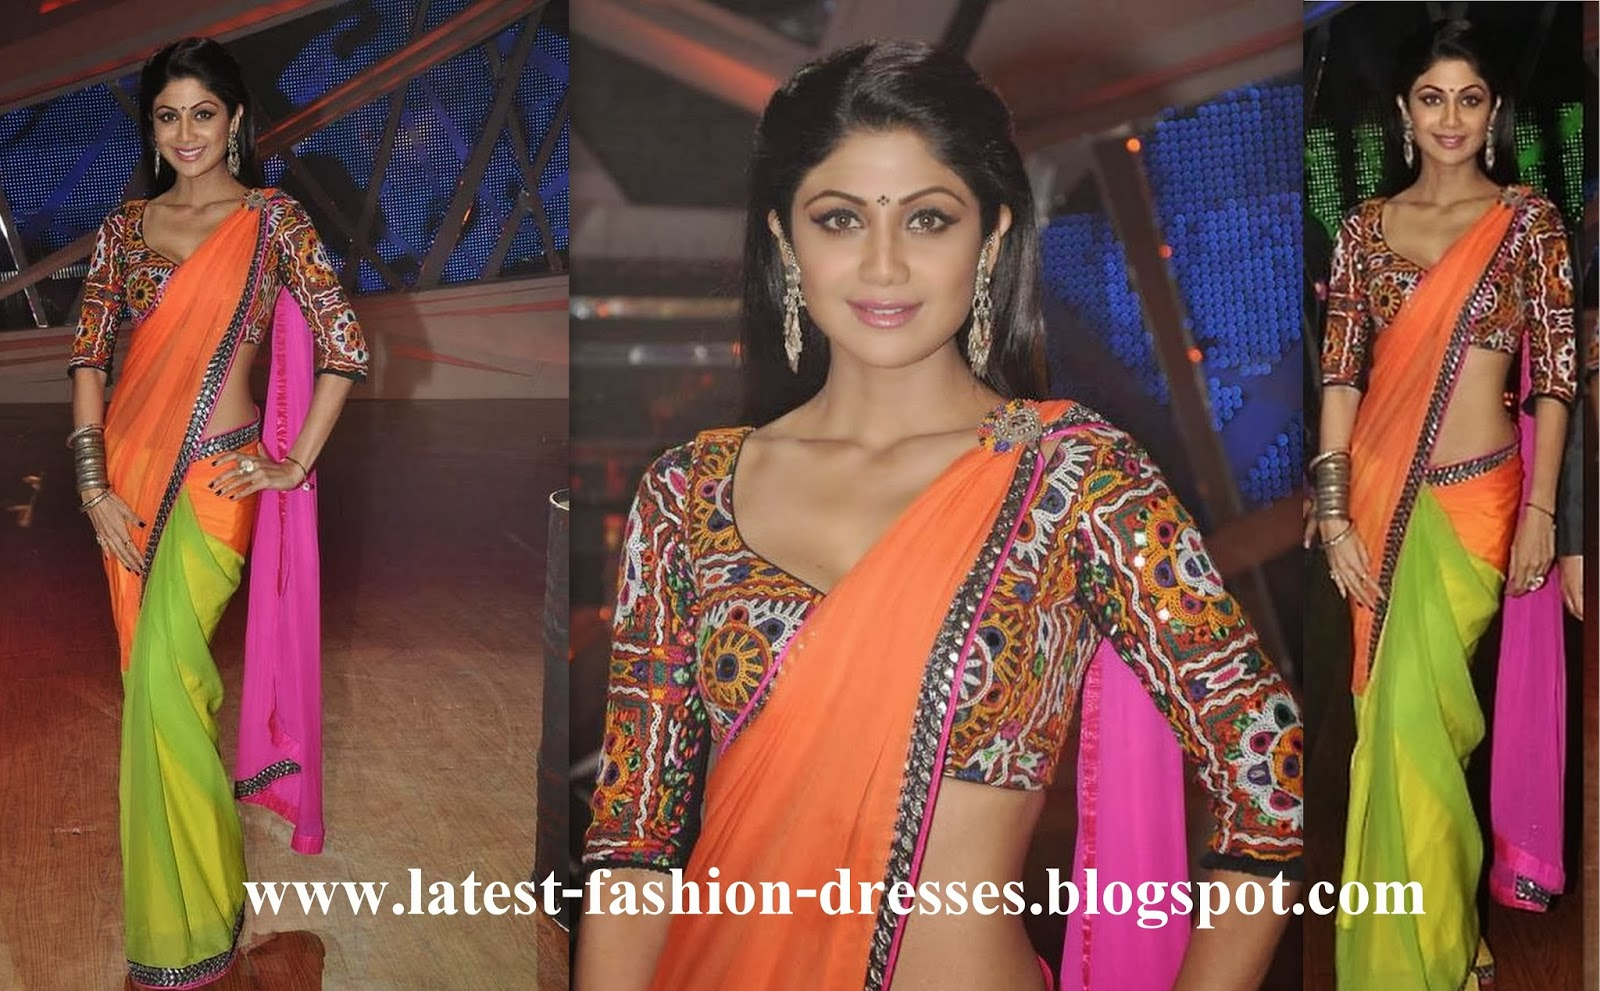 Bollywood actress shilpa shetty in saree blouse